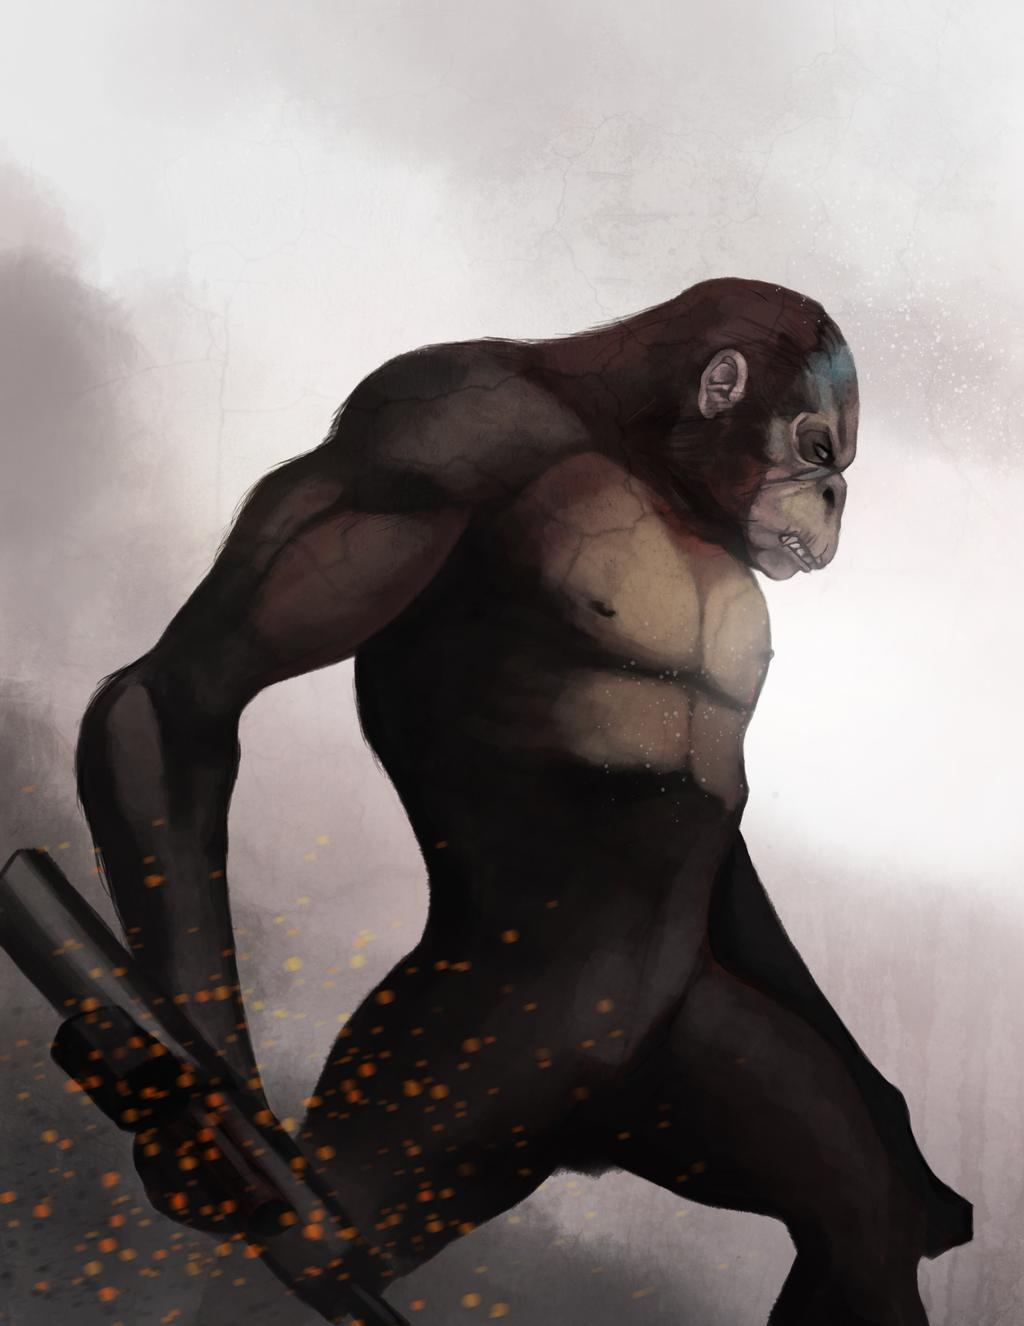 apes____better____than_humans__by_envidia14_d7n9onw-fullview